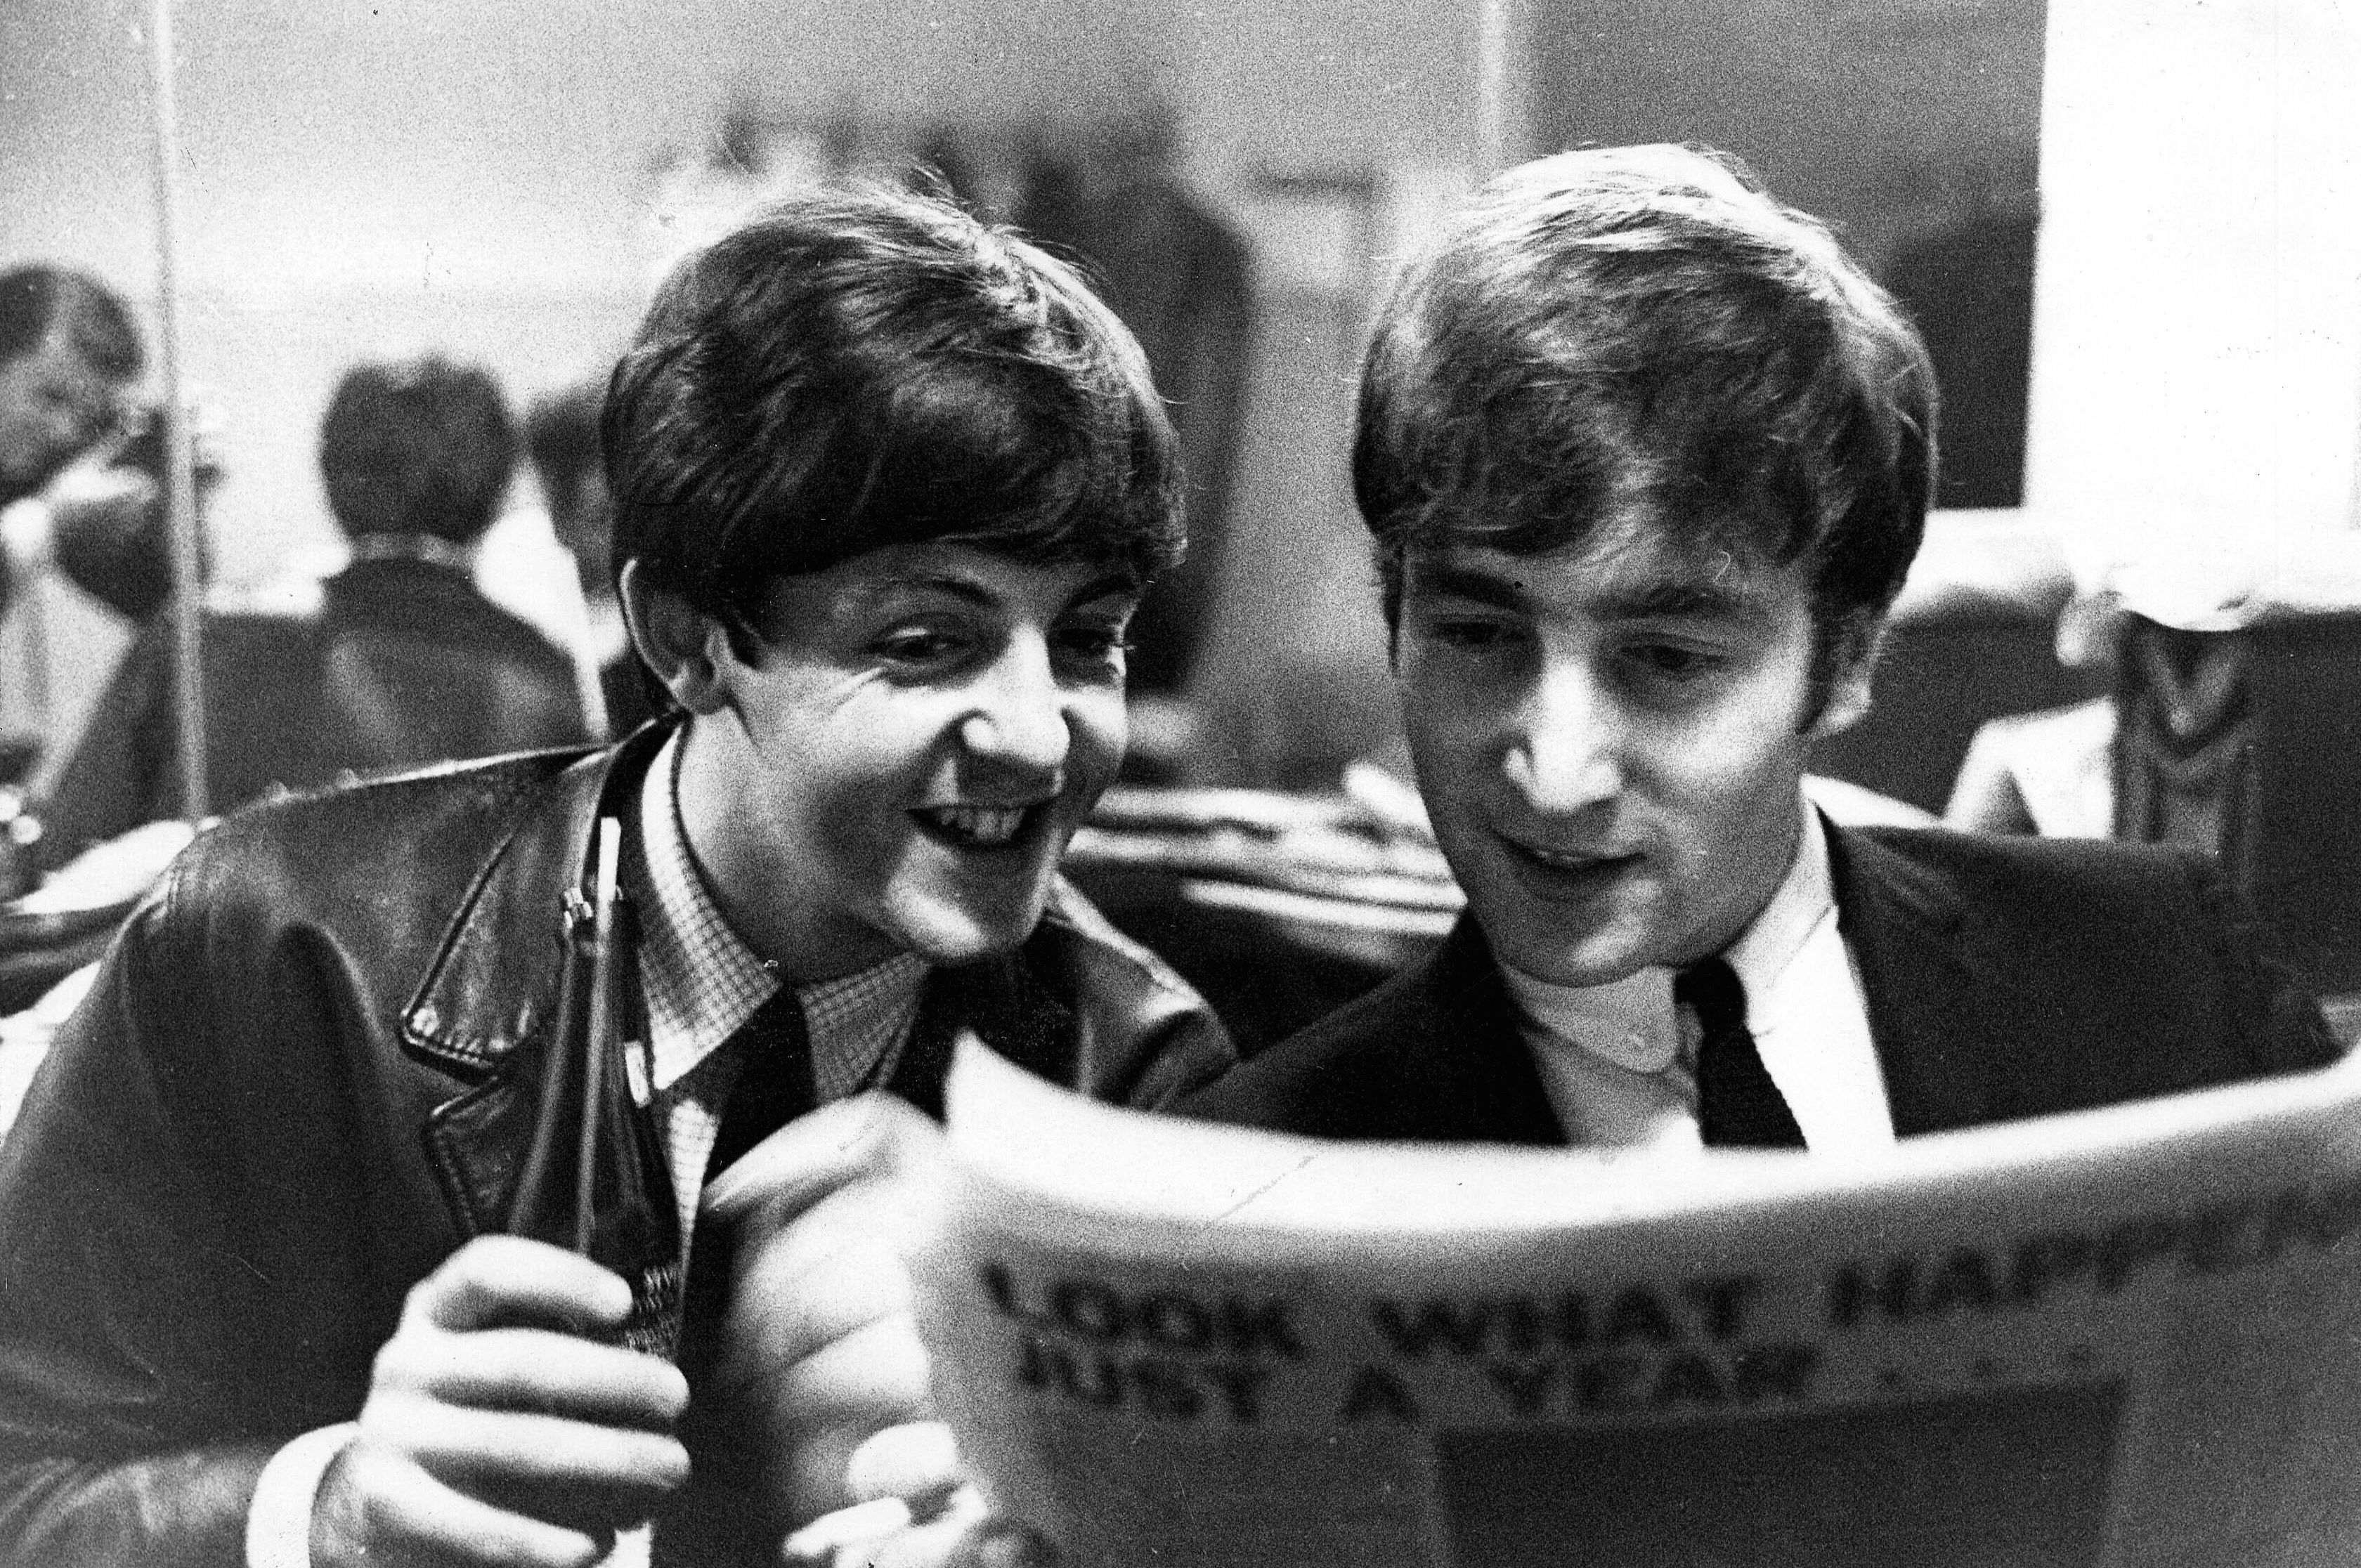 PAUL MCCARTNEY AND JOHN LENNON READING NEWSPAPER